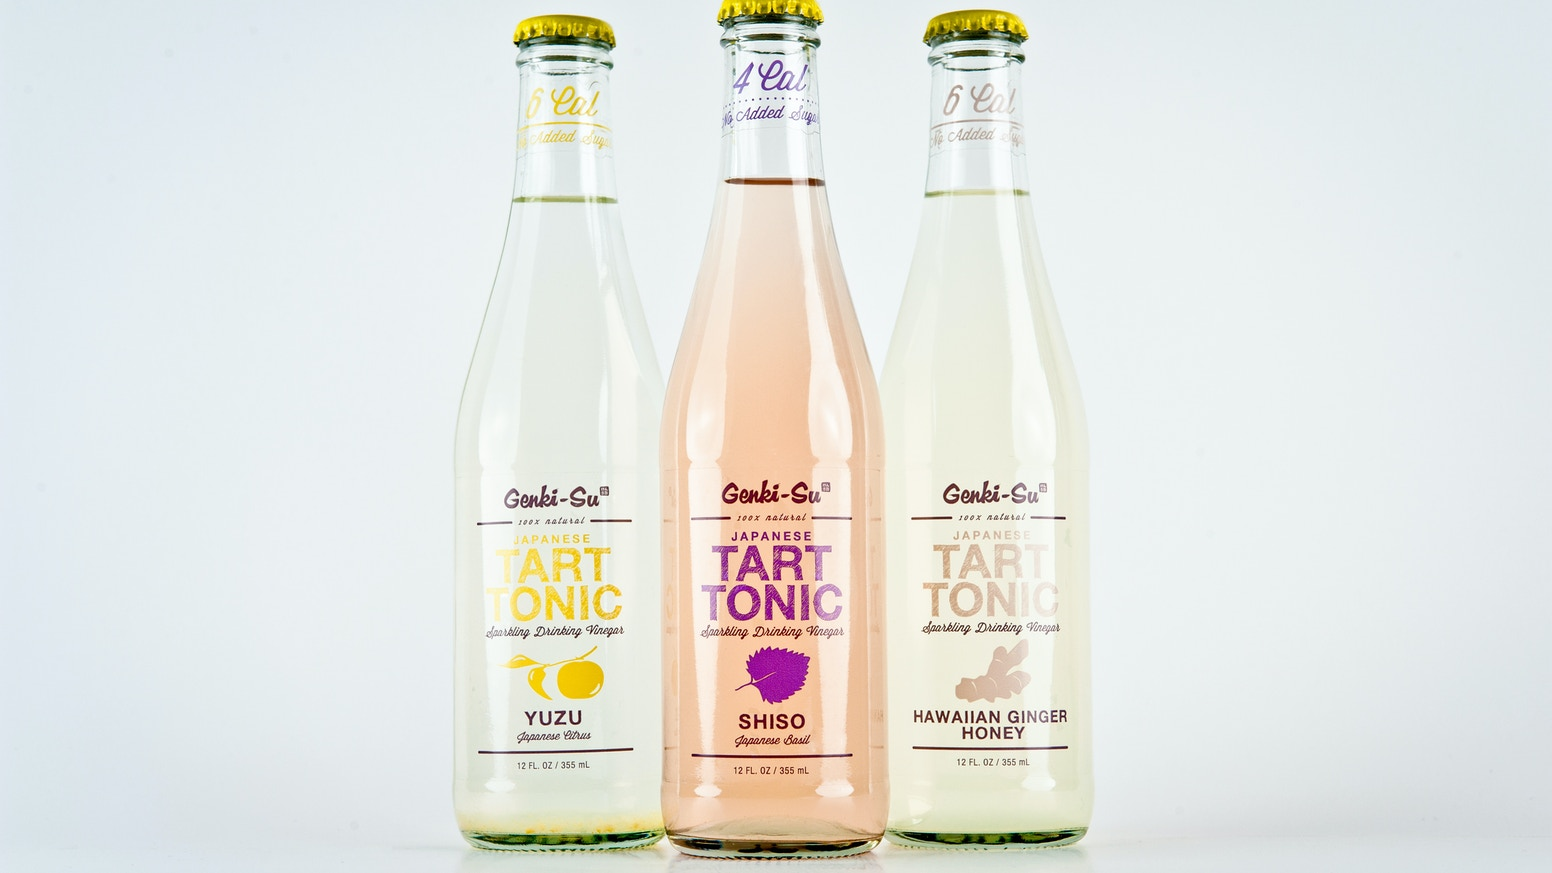 All-natural, sparkling beverage made from coconut vinegar & fresh Japanese ingredients. Refreshing, tart, sweet & tasty!